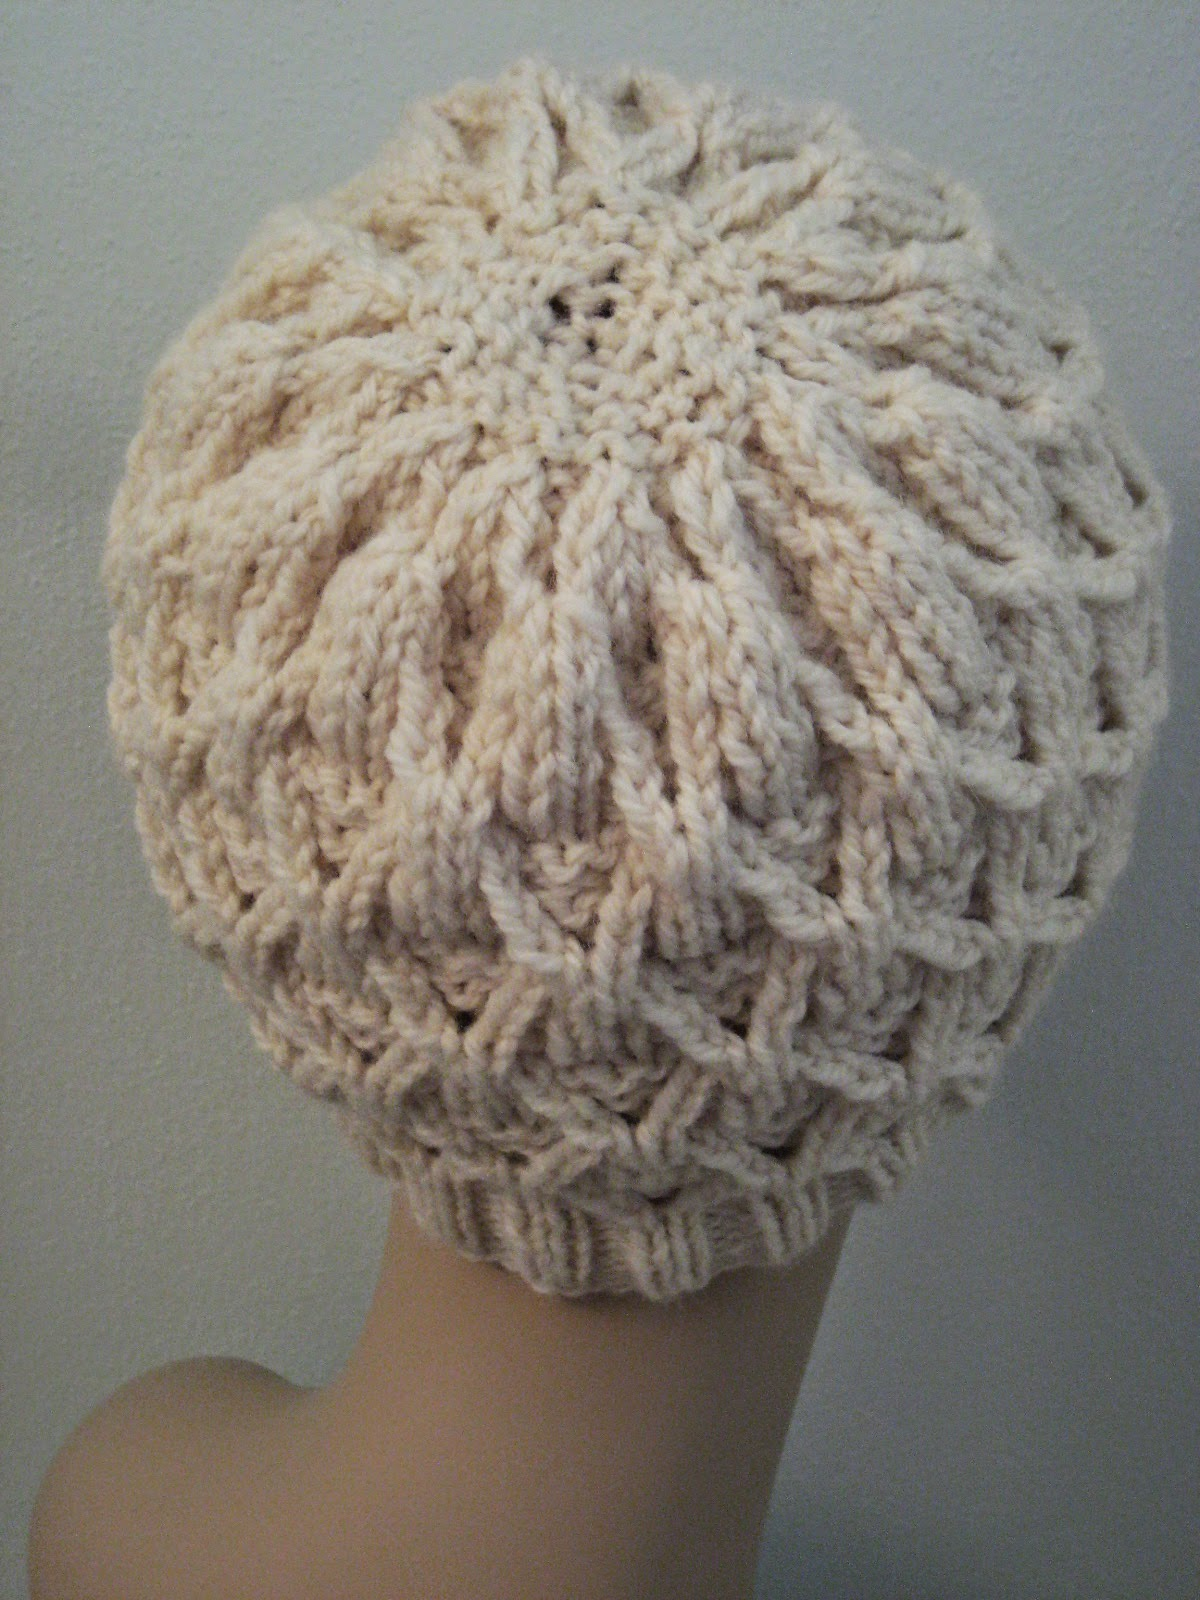 45 Free Knitting Patterns for a Beanie | Guide Patterns